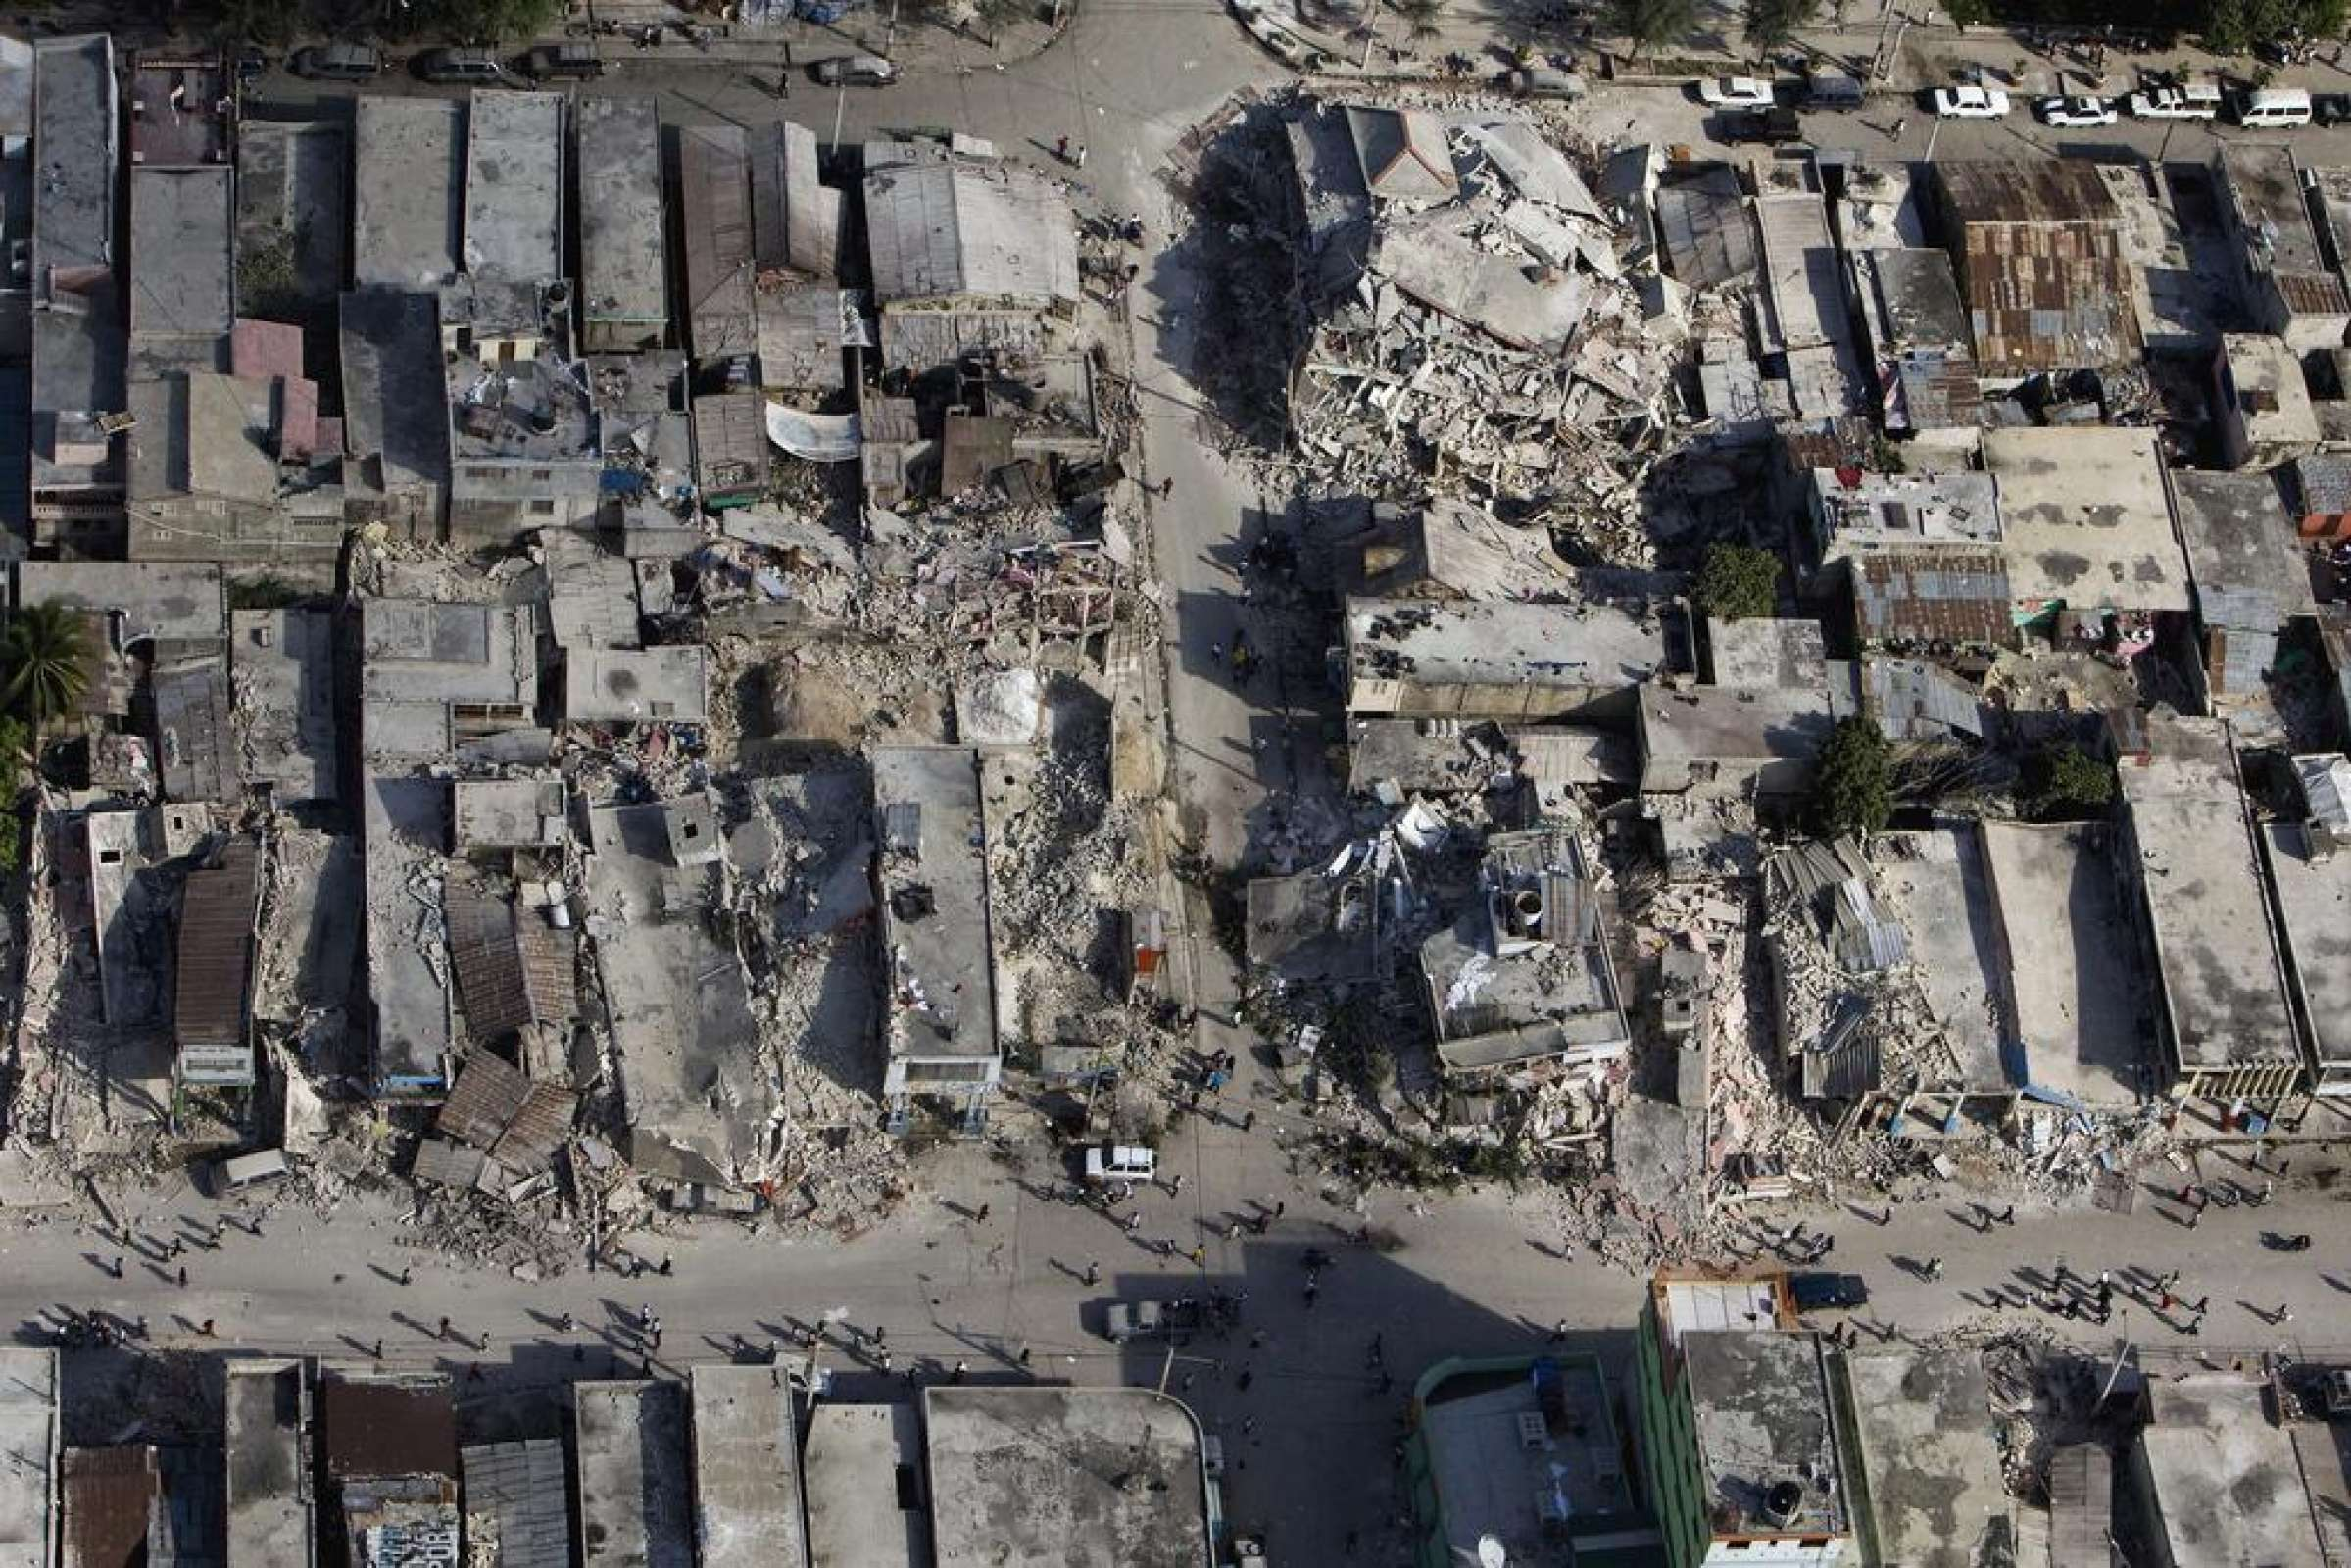 An Aerial View Of The Damage In Port Au Prince Haiti After An Earthquake Measuring 7 Plus On The Richter Scale Hit In January 2010